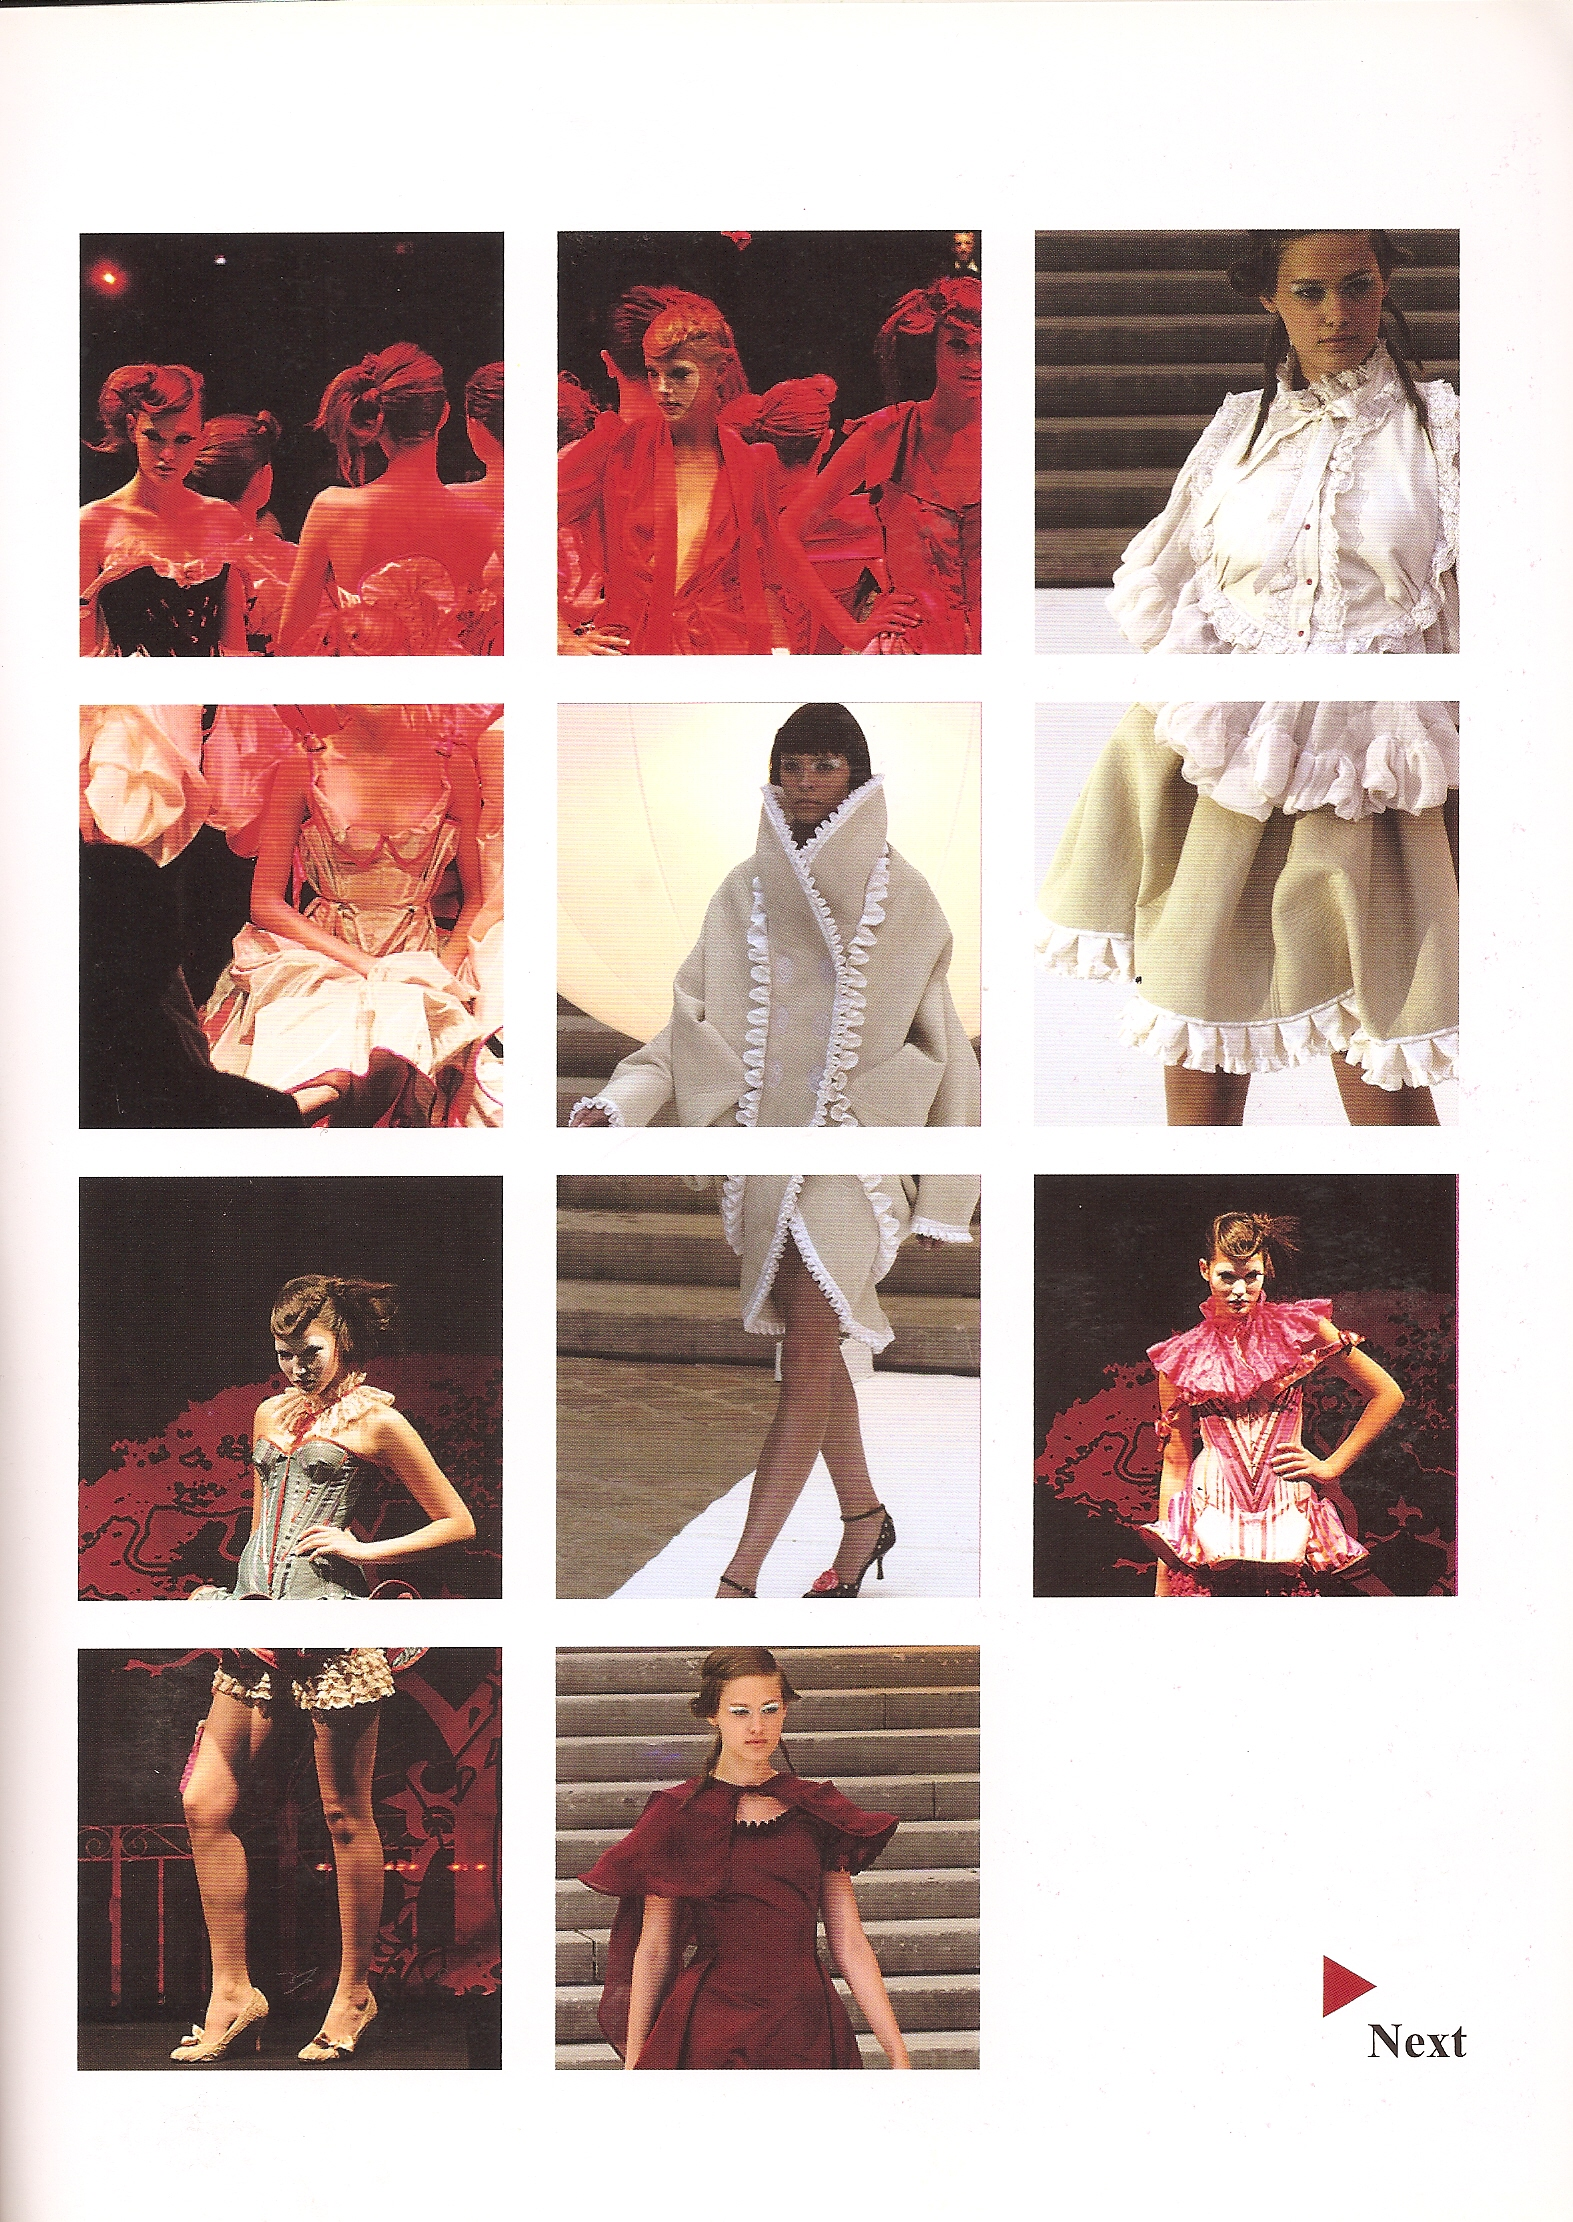 Dalian-world-master´s-haute-couture-collection-pag2-2006.